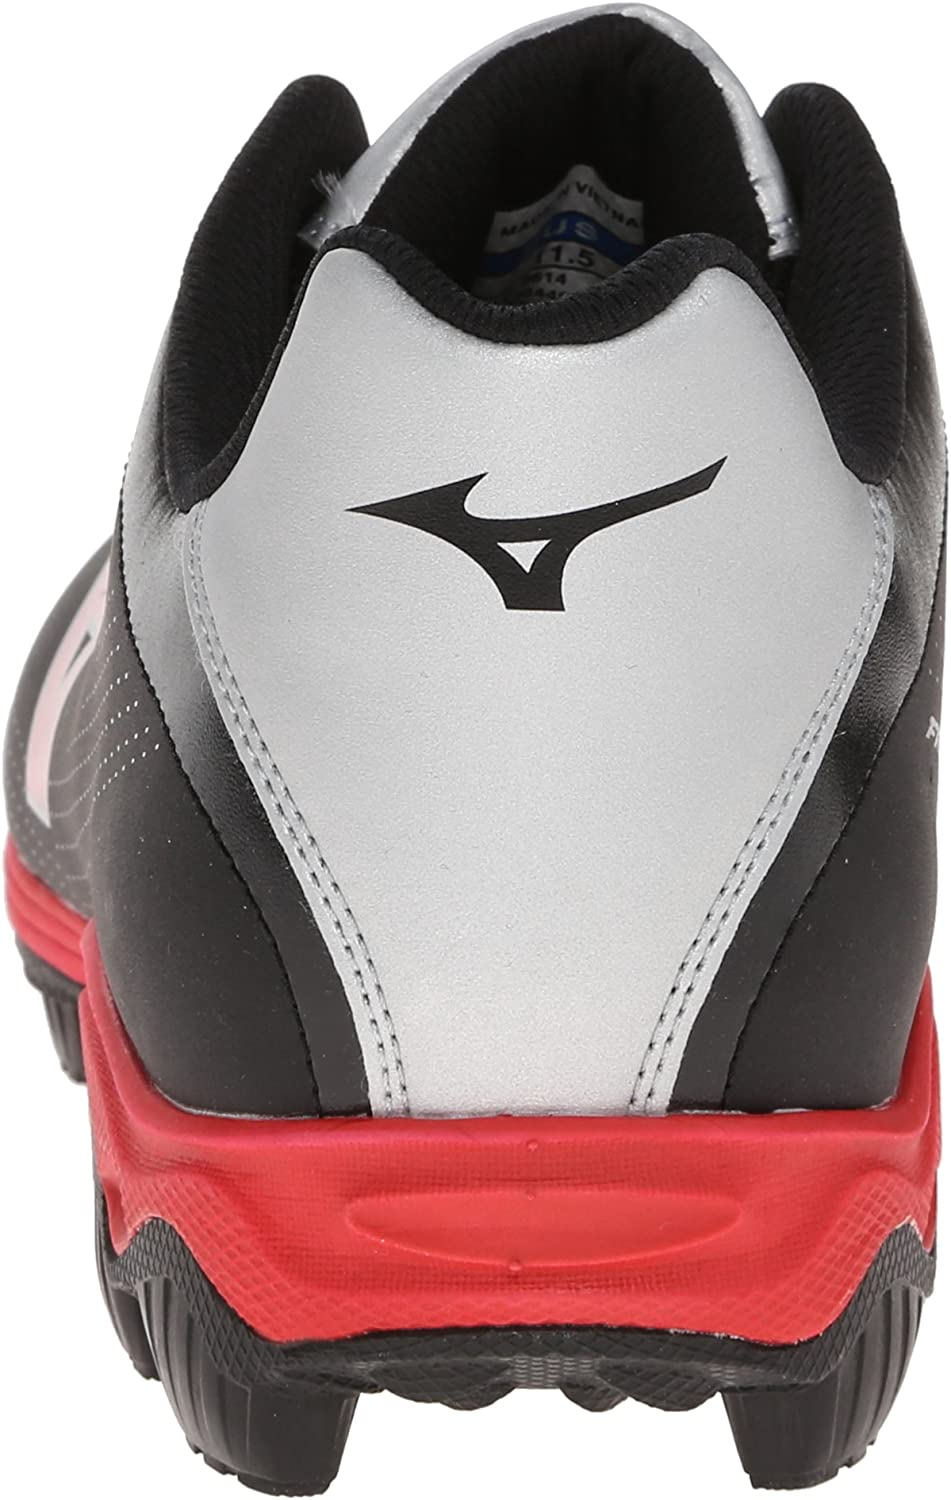 Mizuno Mens 9-Spike Franchise 7 Low Baseball Cleat